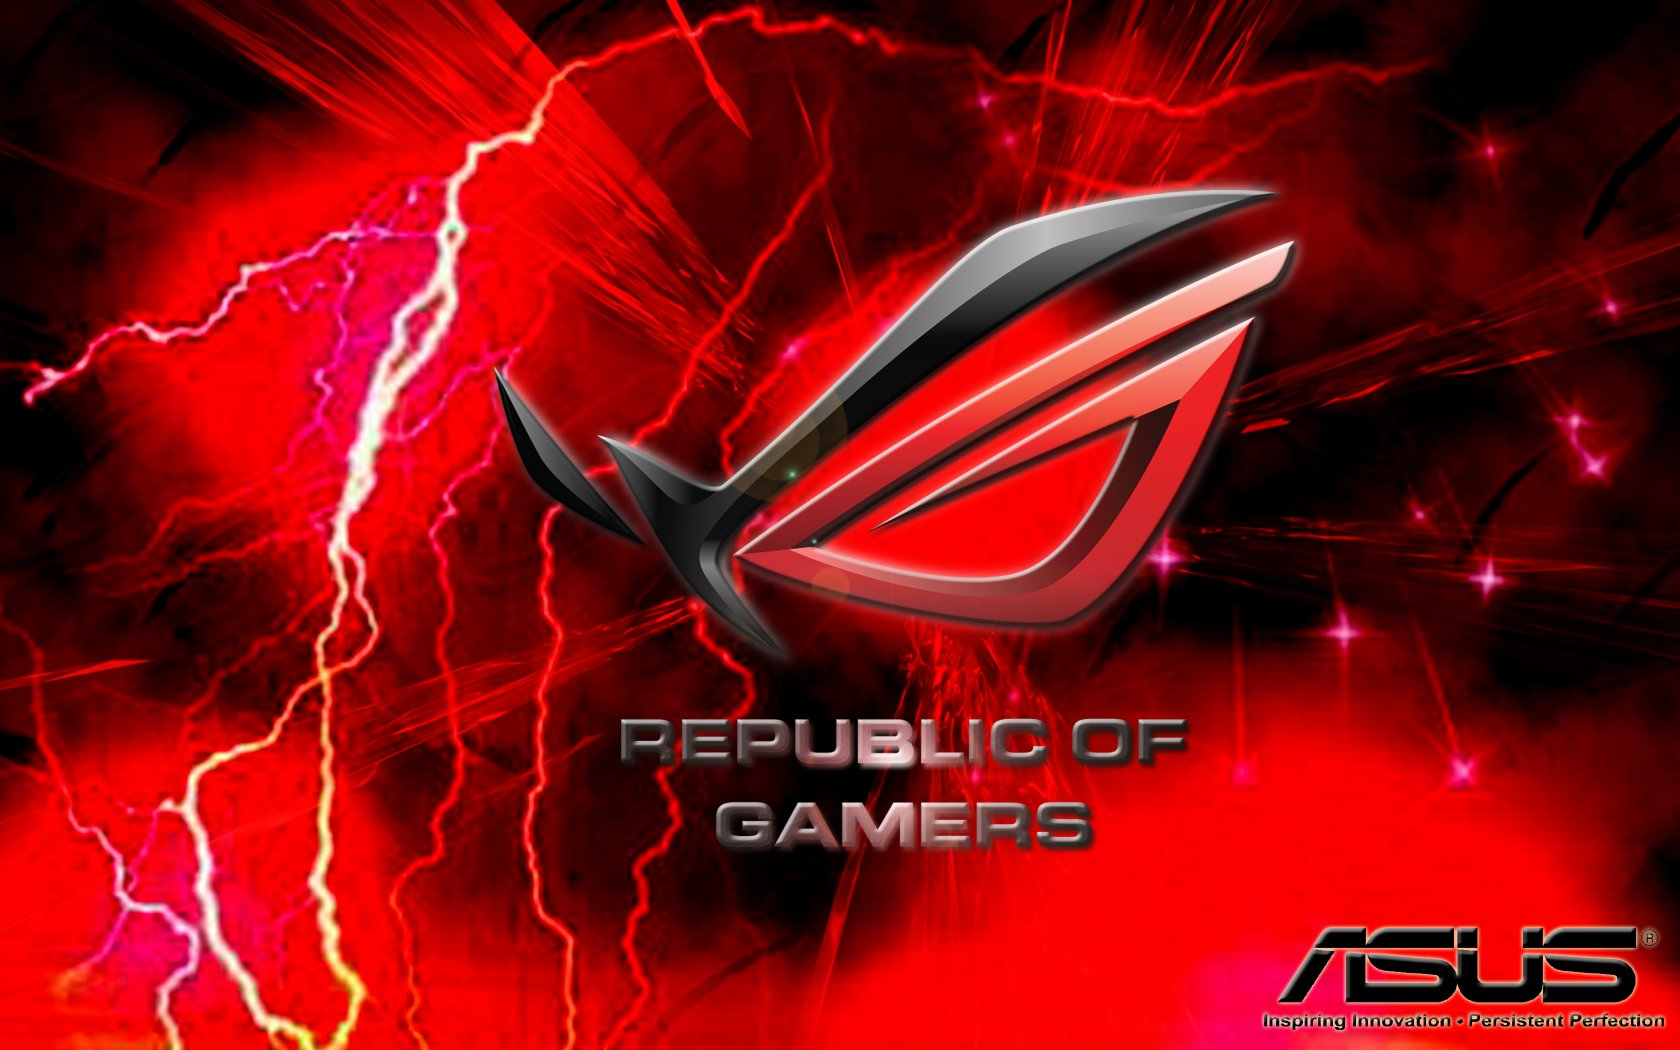 asus republic of gamers wallpaper wallpapersafari. Black Bedroom Furniture Sets. Home Design Ideas